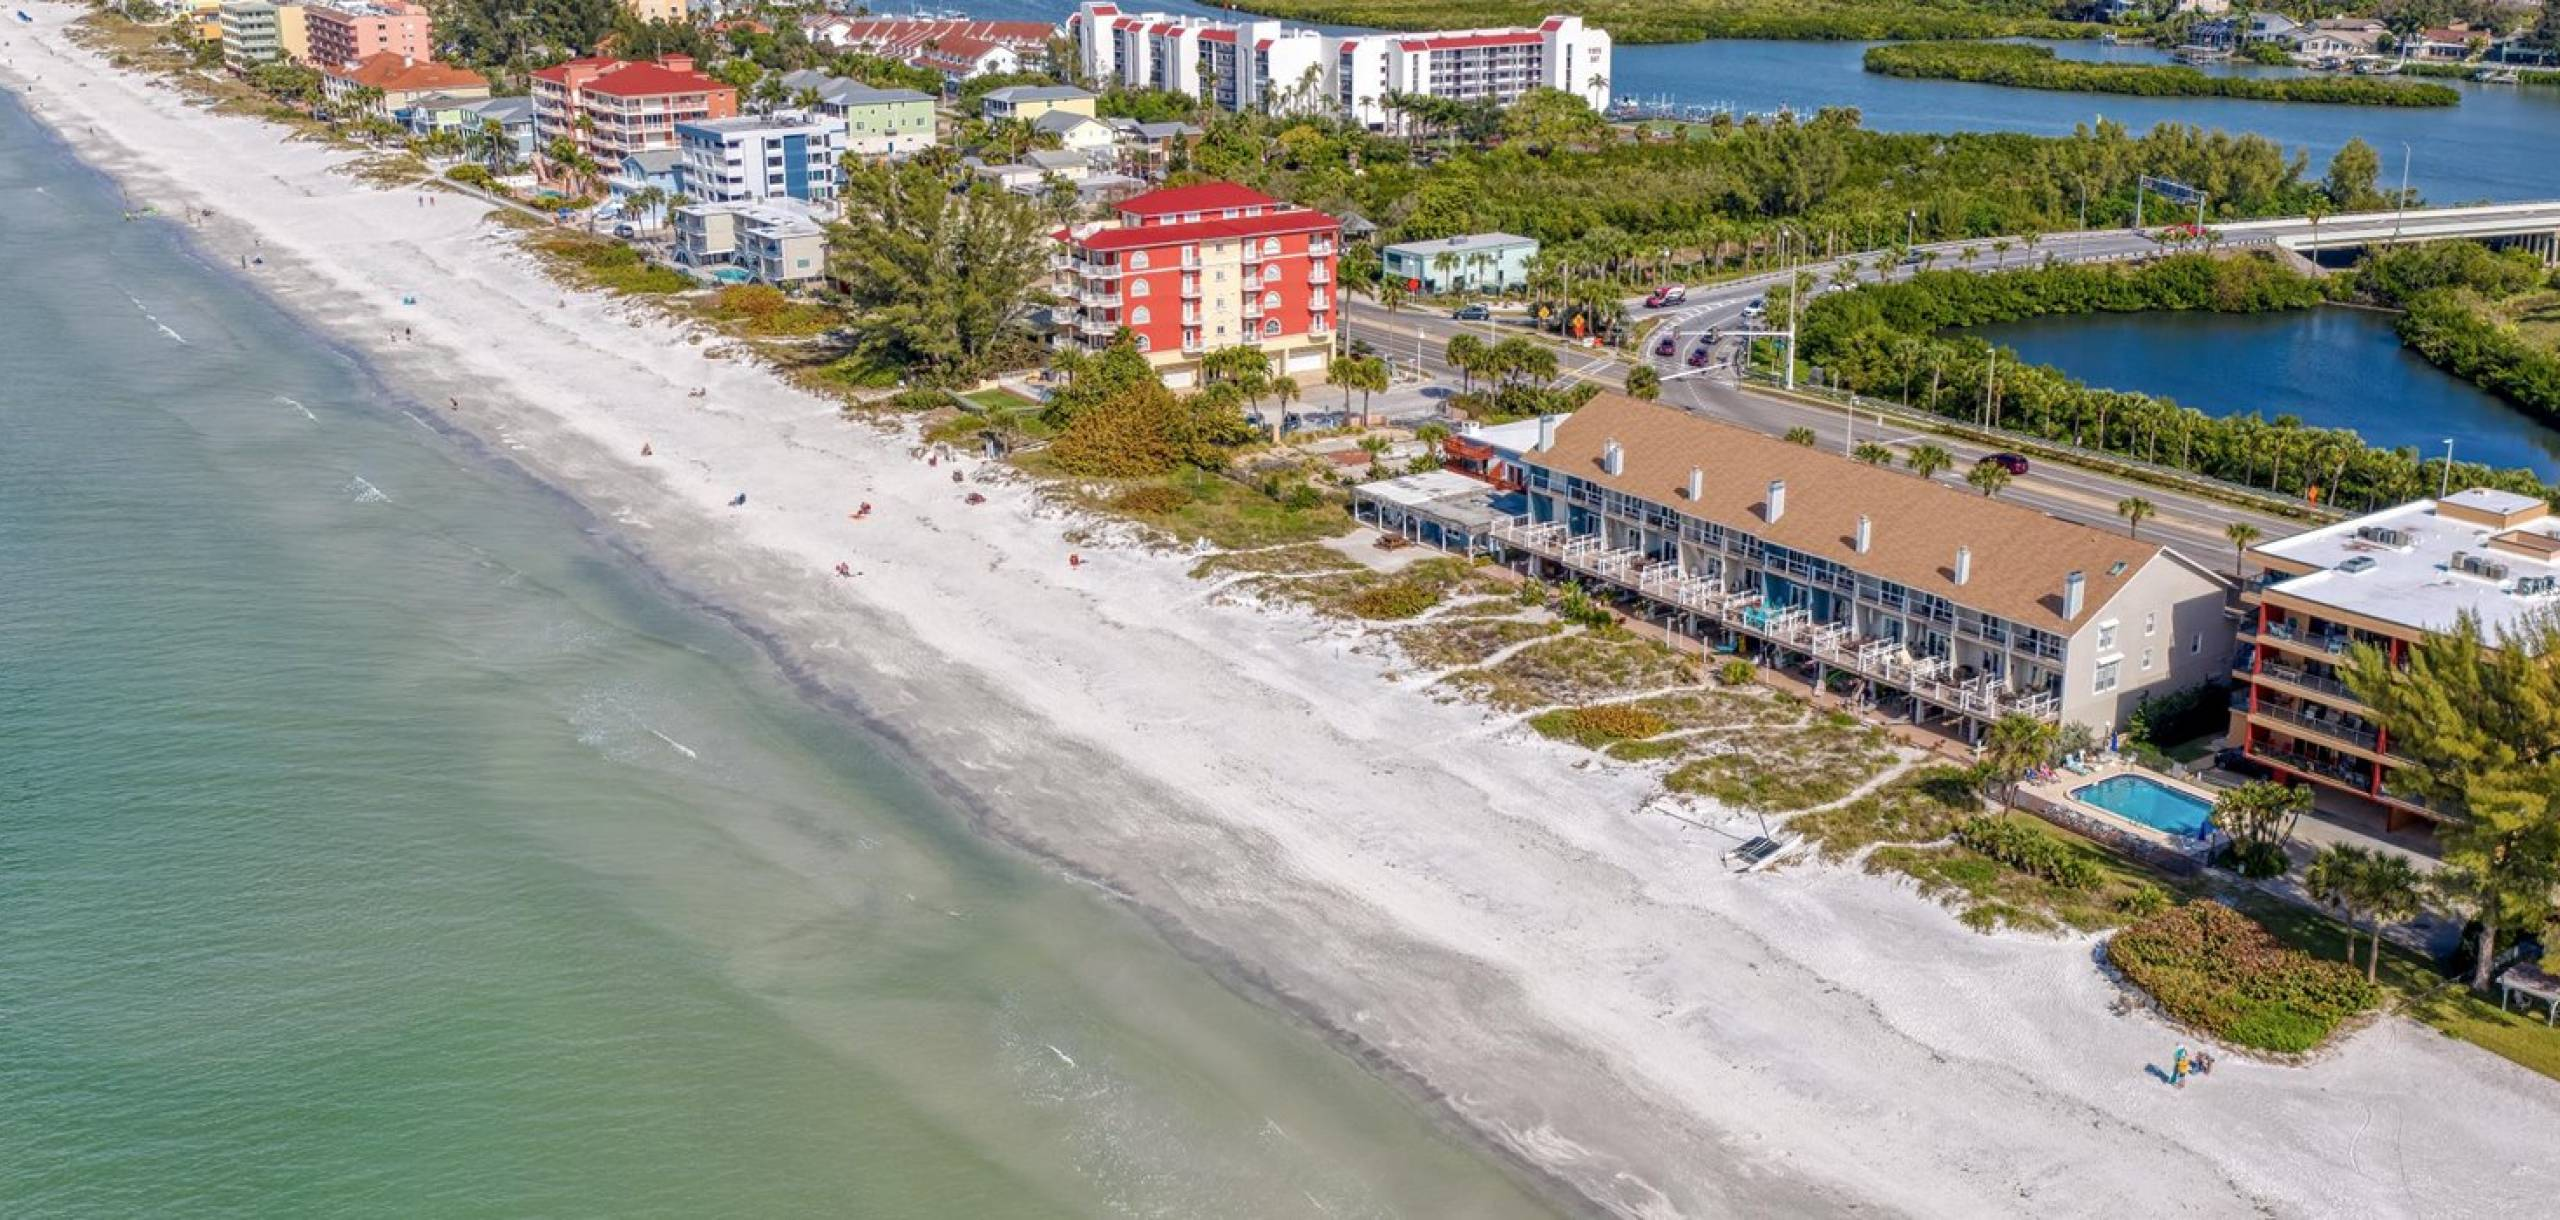 Indian Shores Beach Drone Picture